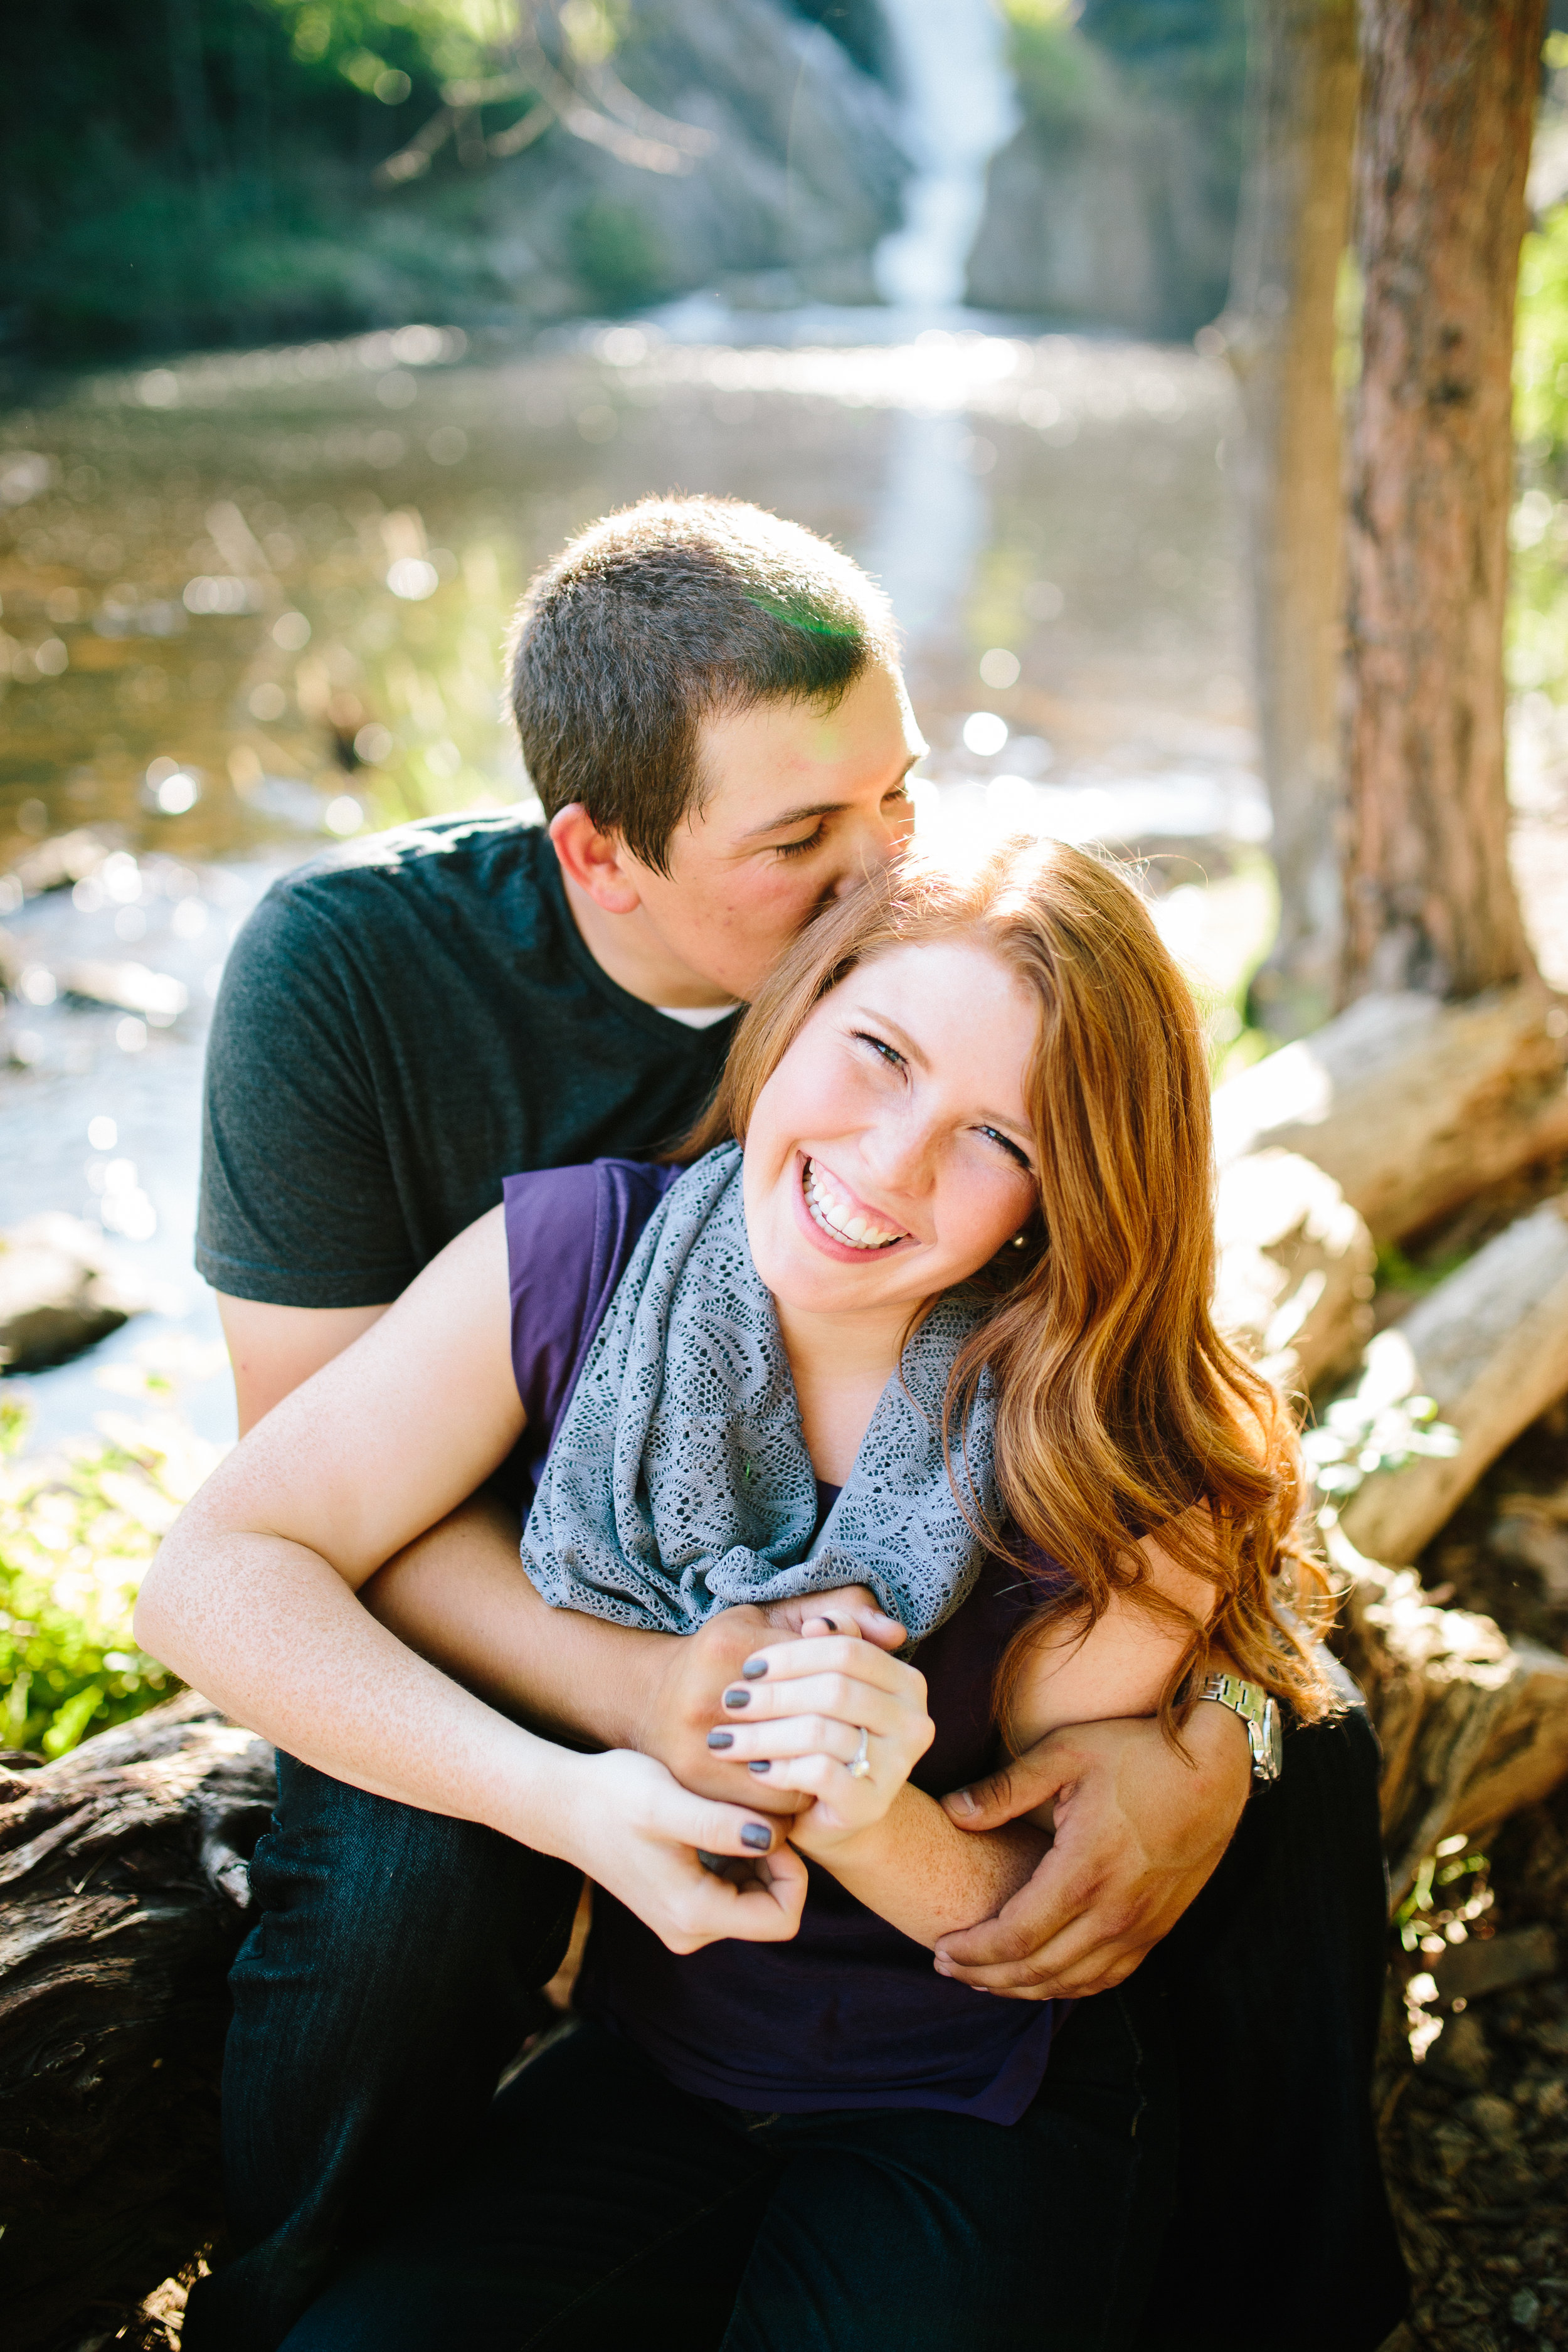 Couples Engagement session-adventure hike-waterfall-seattle photographer janelle elaine.jpg